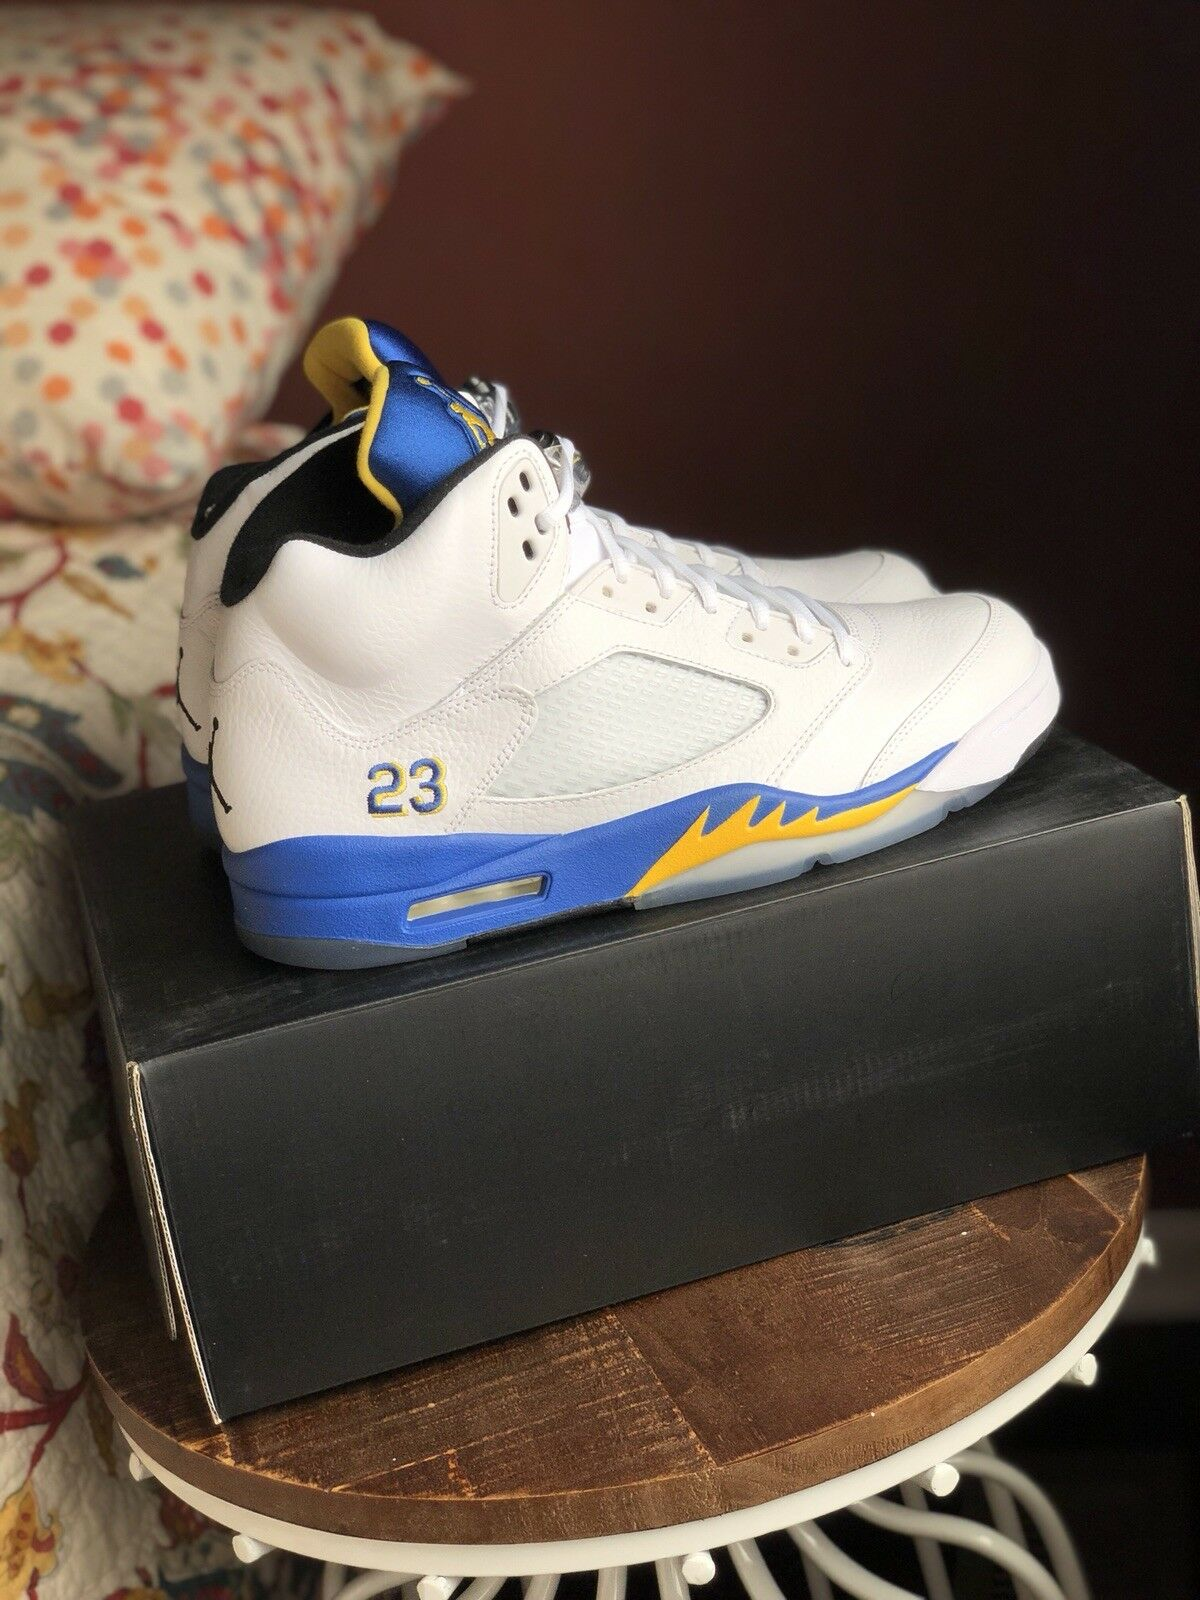 DS Nike Air Jordan 5 Laney 5 Shoes - Size 12 - Brand New With Receipt